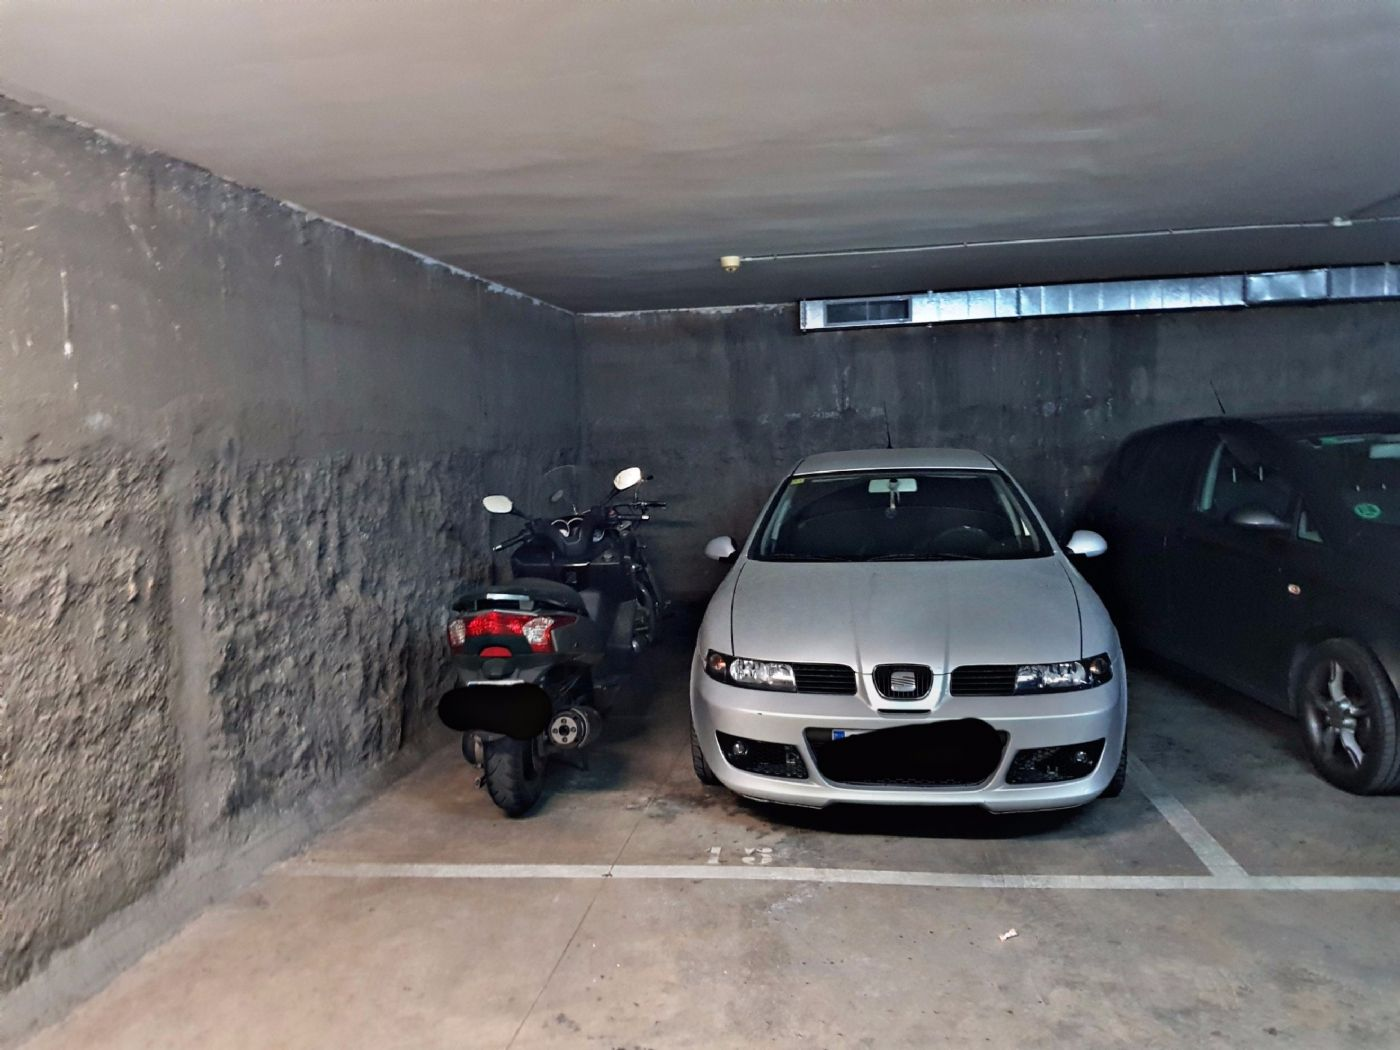 Location Parking voiture à Rafael casanova, 50. Parquing para dos motos y un coche